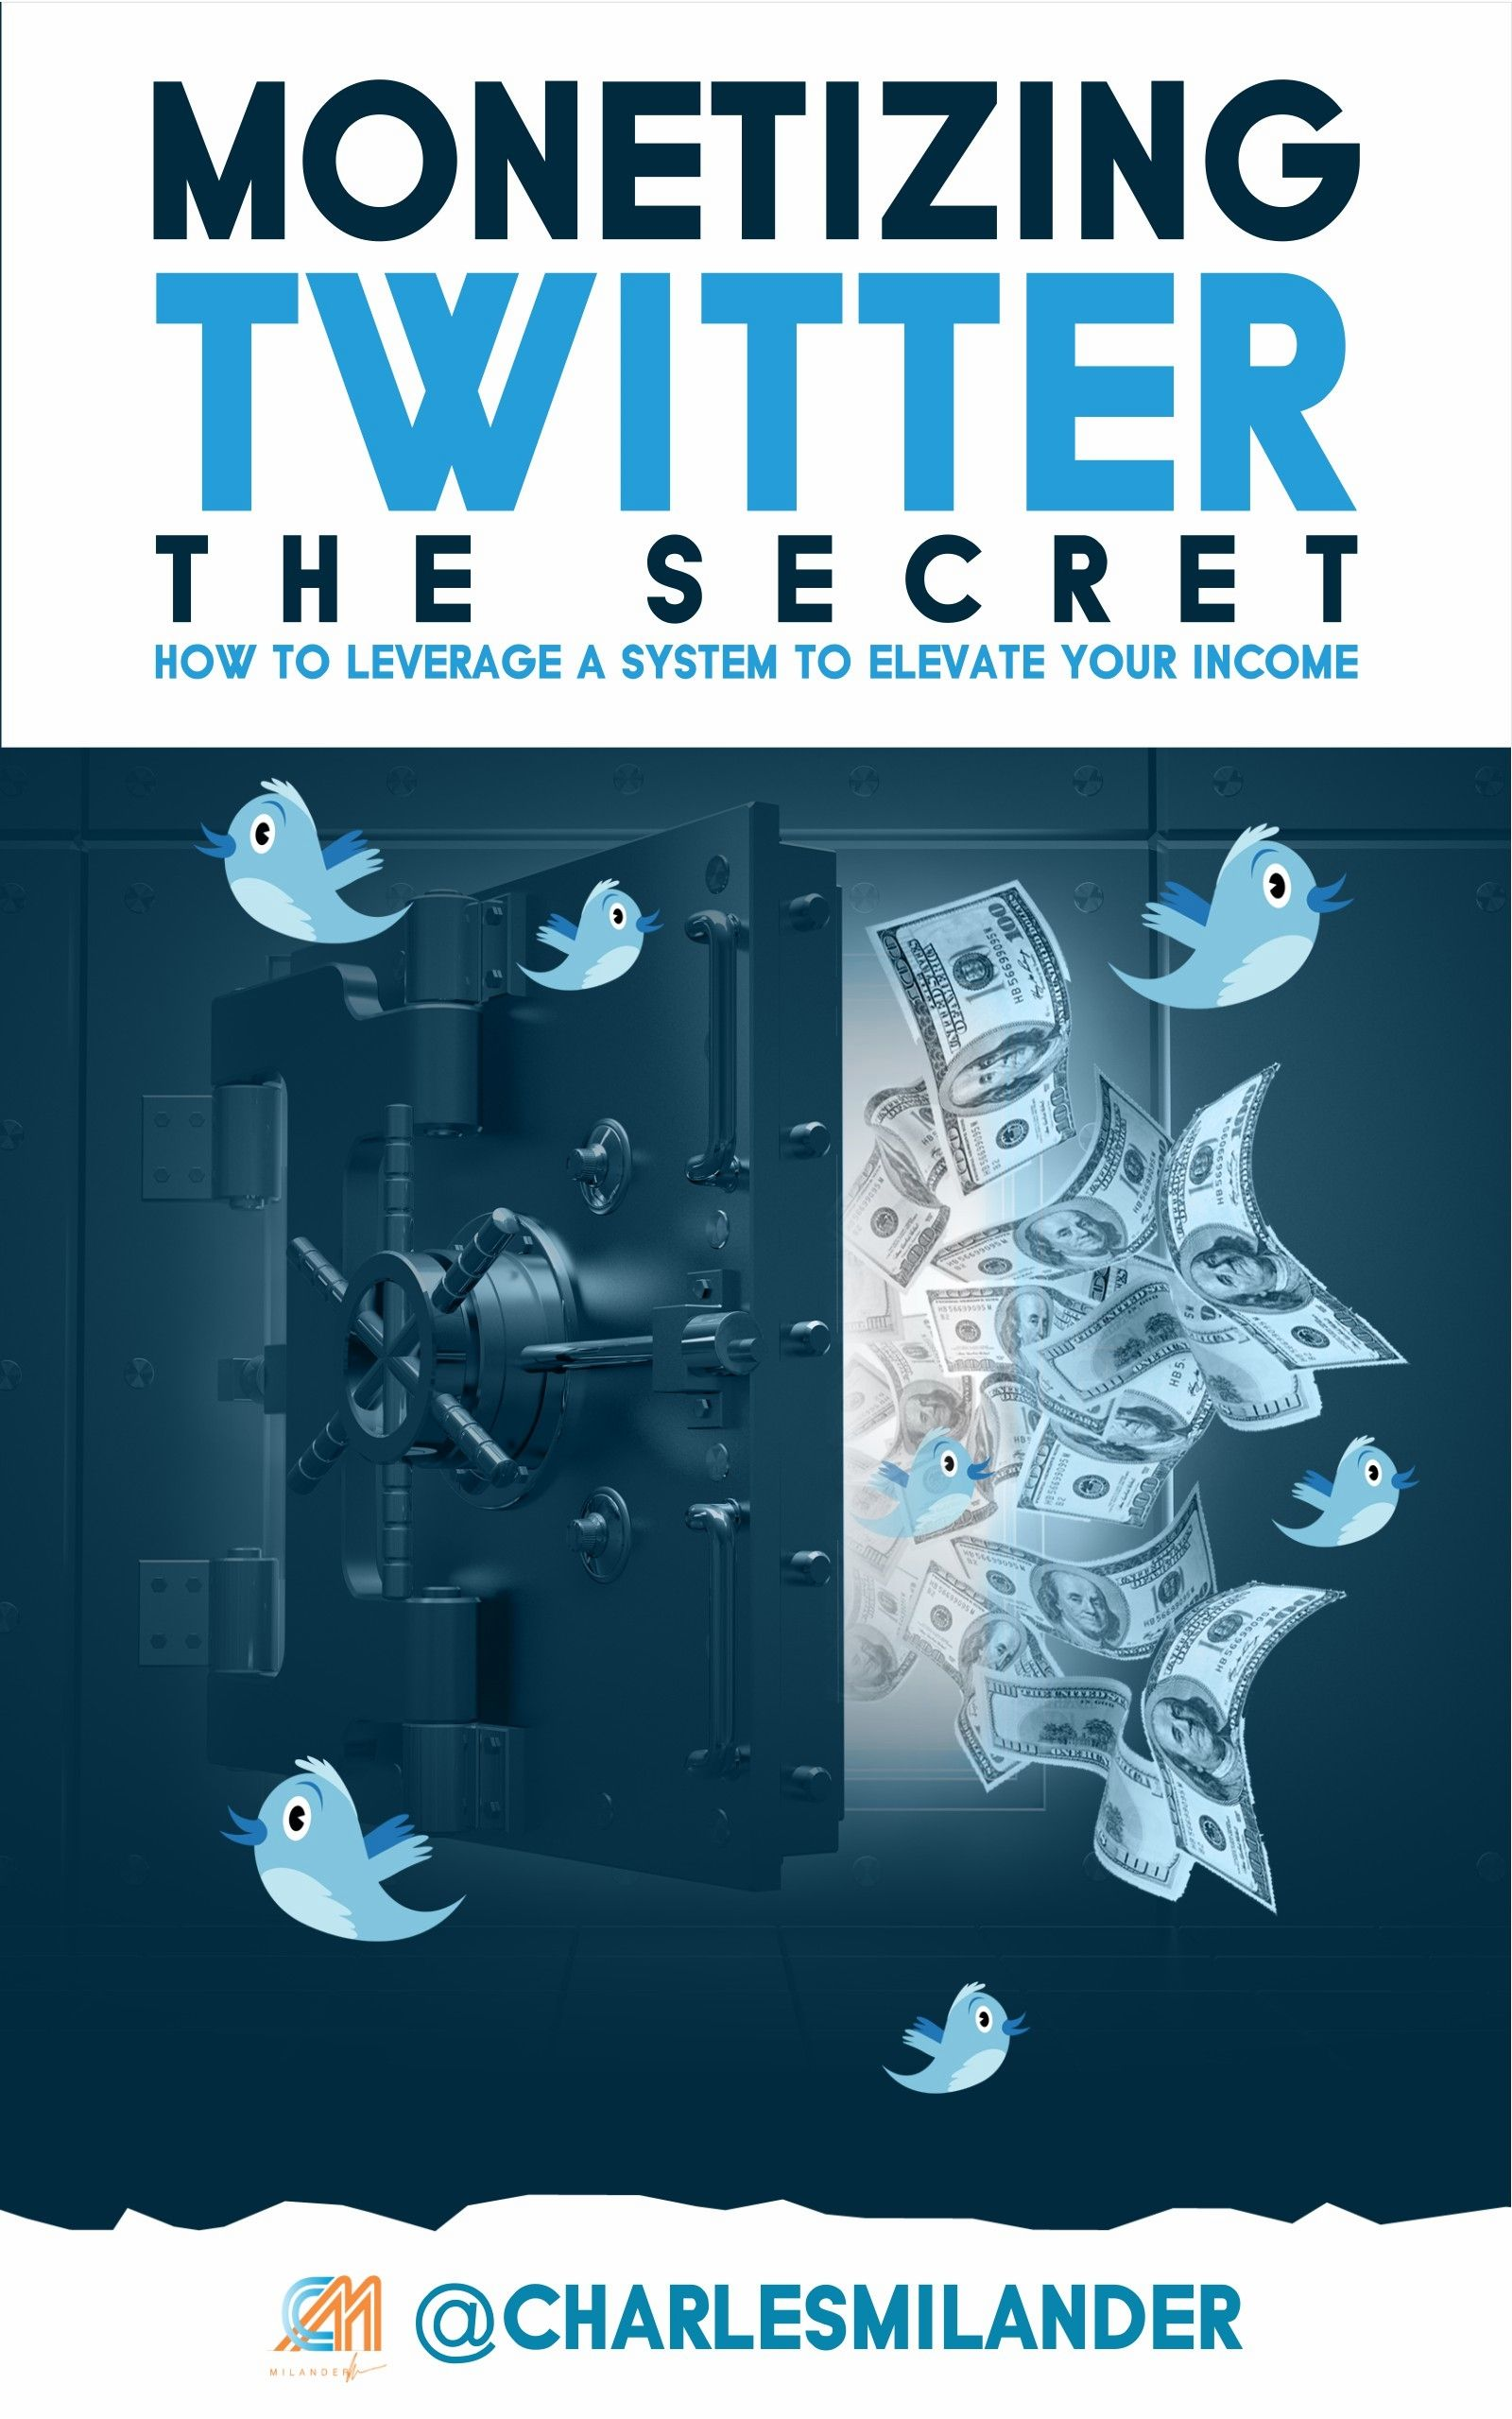 #1 and #2 in Amazon Best Seller. Now Available on http://amzn.to/2hGcMDx Are you ready to start MONETIZING (Making Money) on Social Media? The Secret never told for the first time reveal. The social media marketing expert Charles Milander gives you the tools you need to teach you how to leverage a system to elevate your income and make you a social media influencer.  The Secret to become successful on social media is to build a solid and consistent social media marketing strategy to..